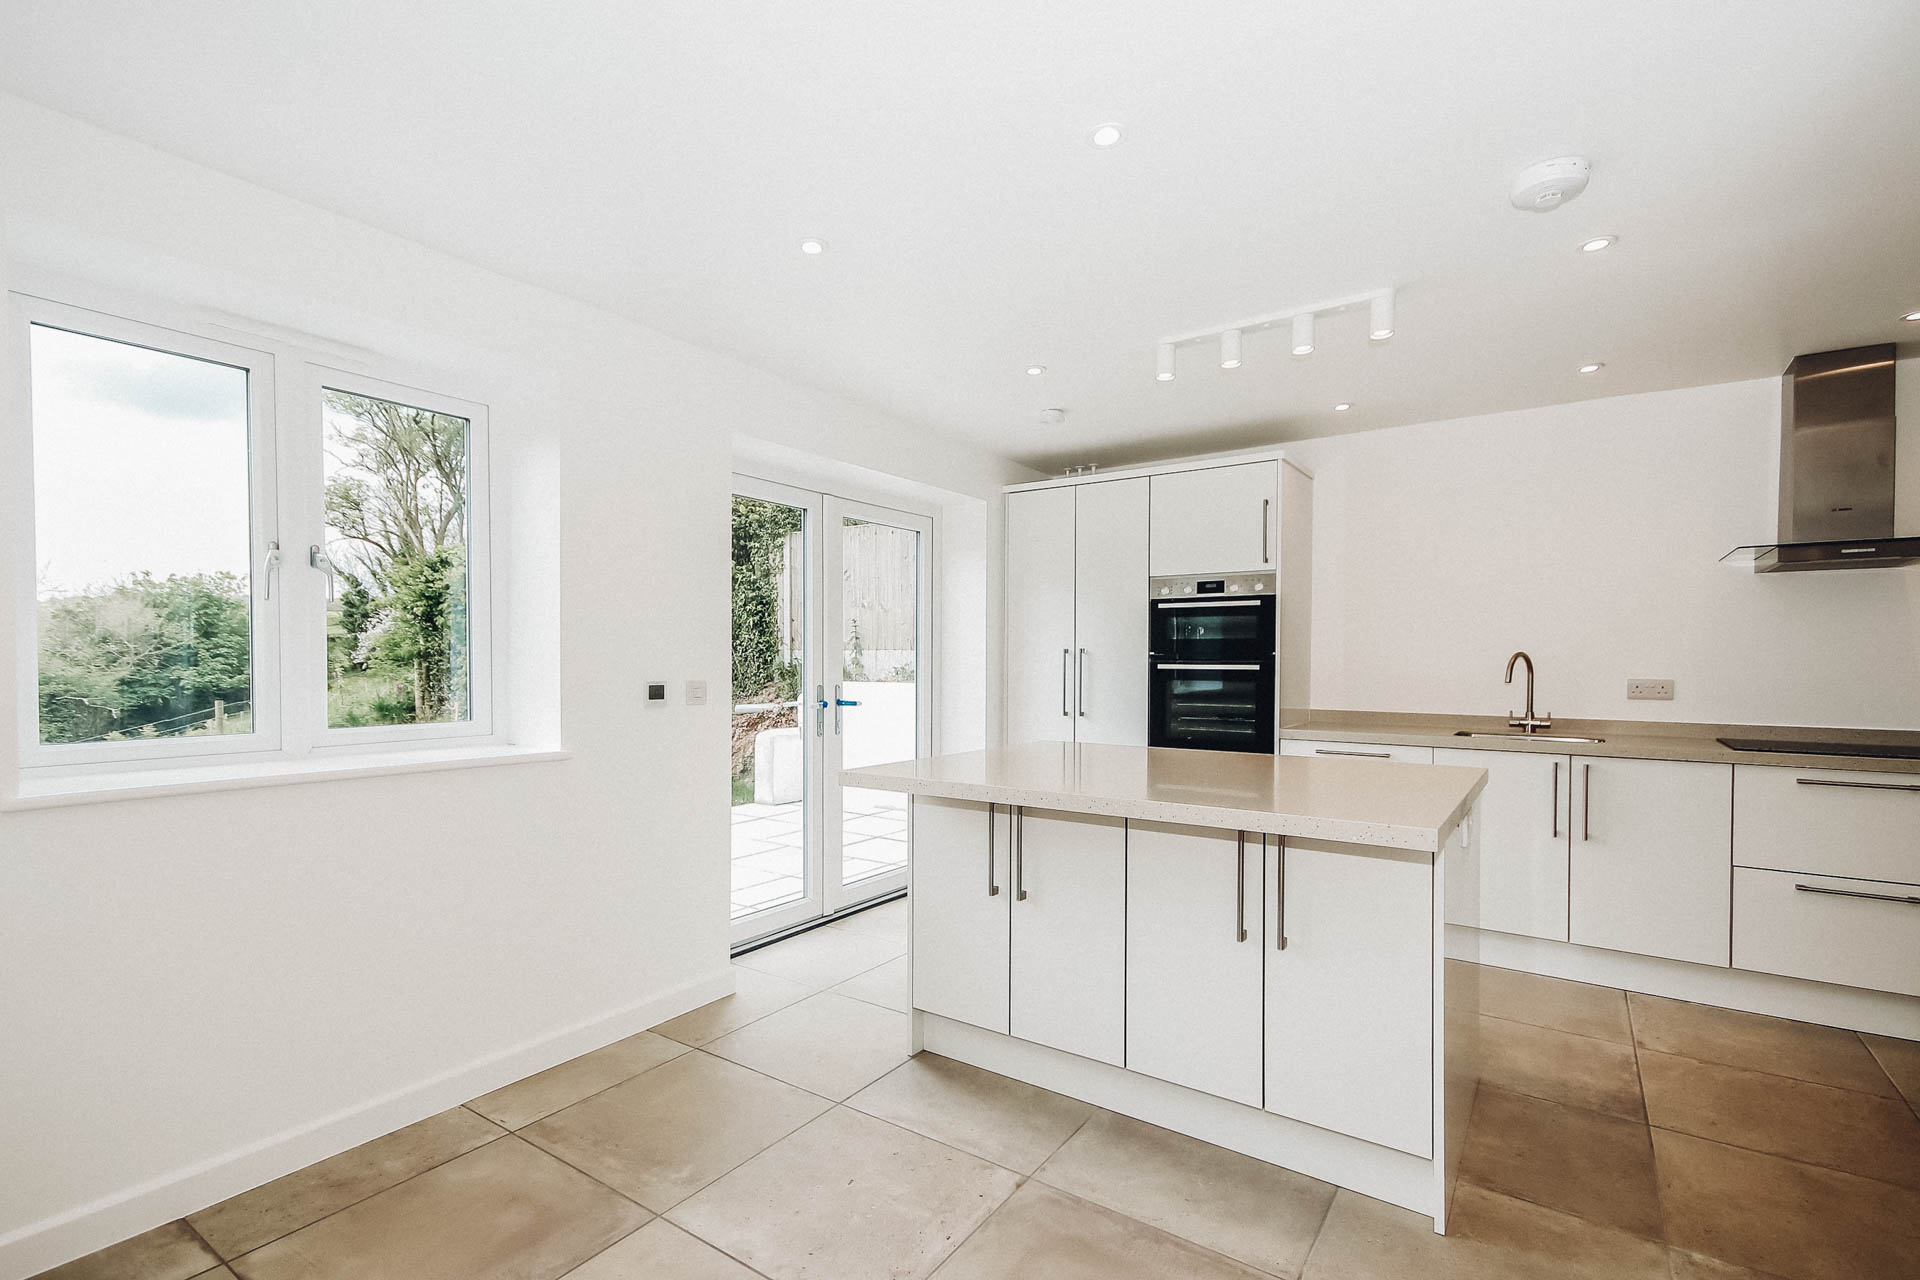 open plan kitchen diner with island in a bespoke new home